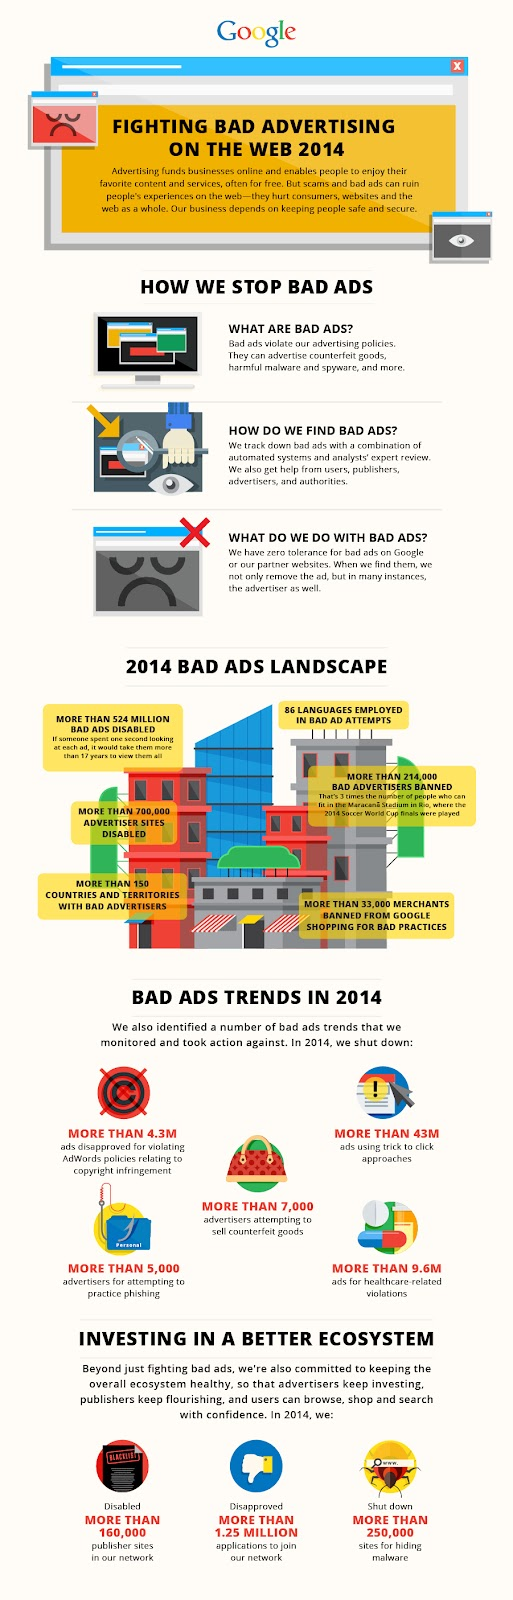 Google_BadAds_Infographic_Feb02-Final.jpg